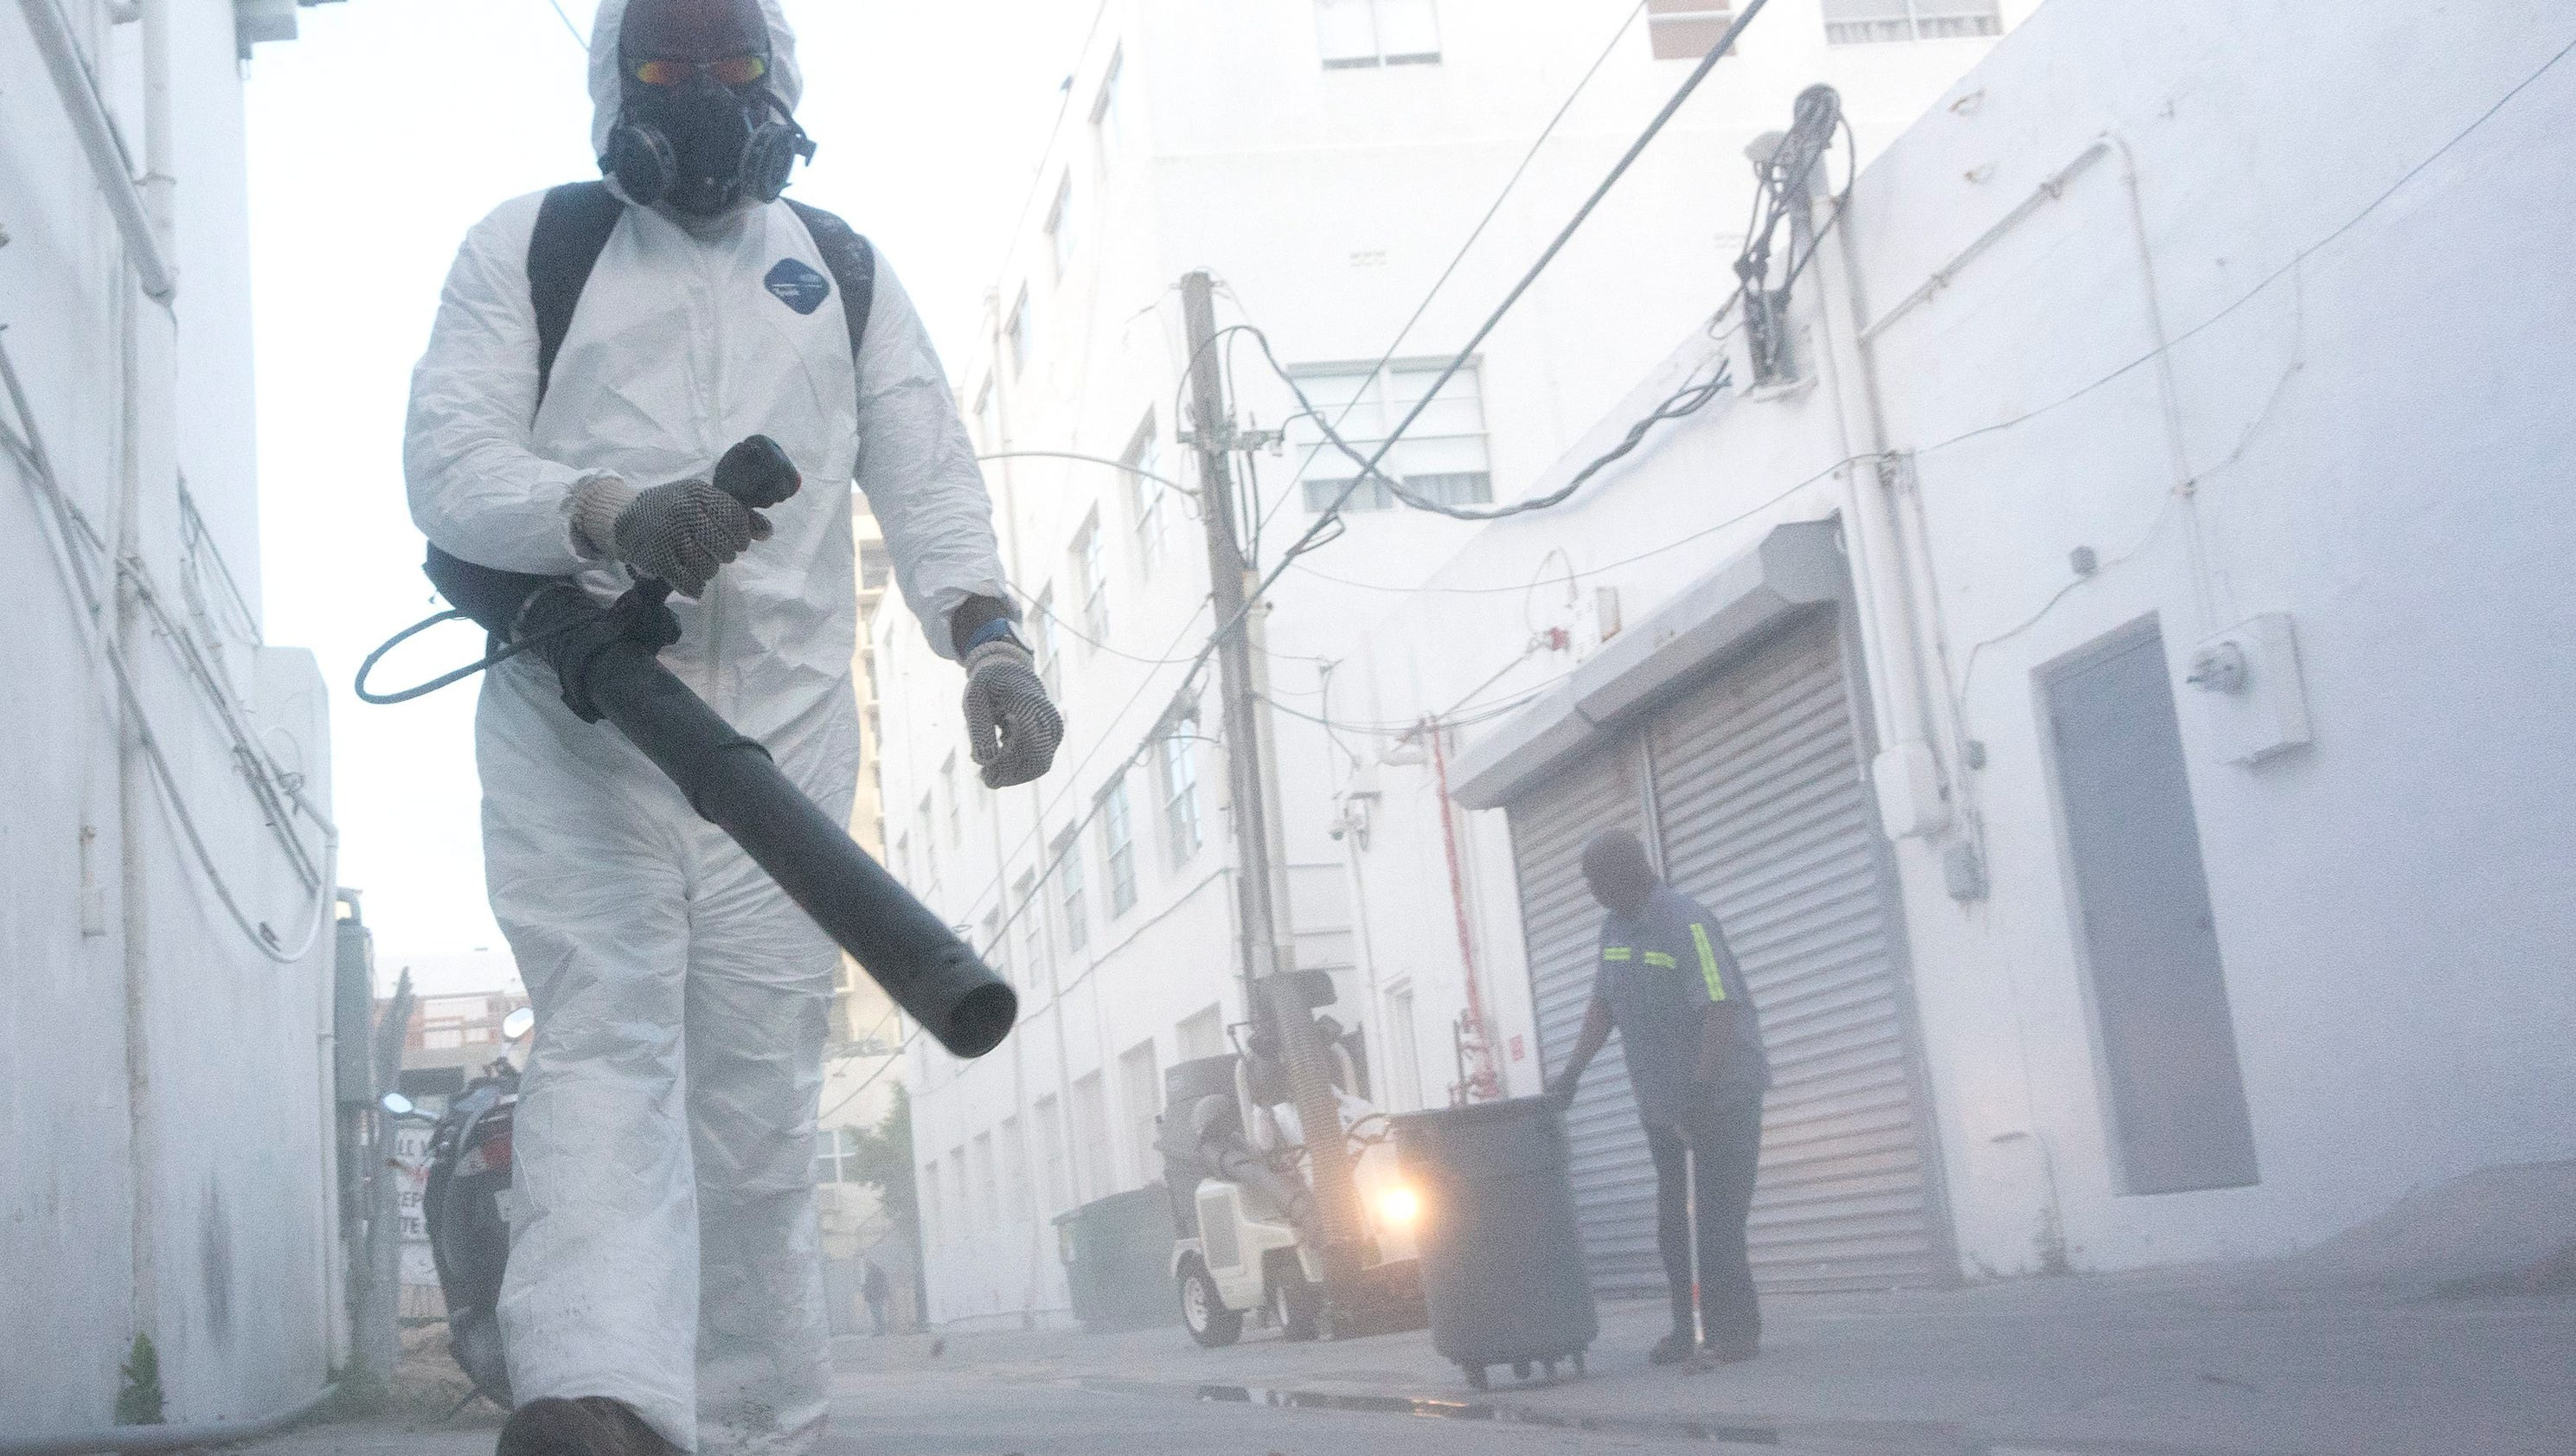 Pregnant women should avoid part of Miami Beach affected by Zika